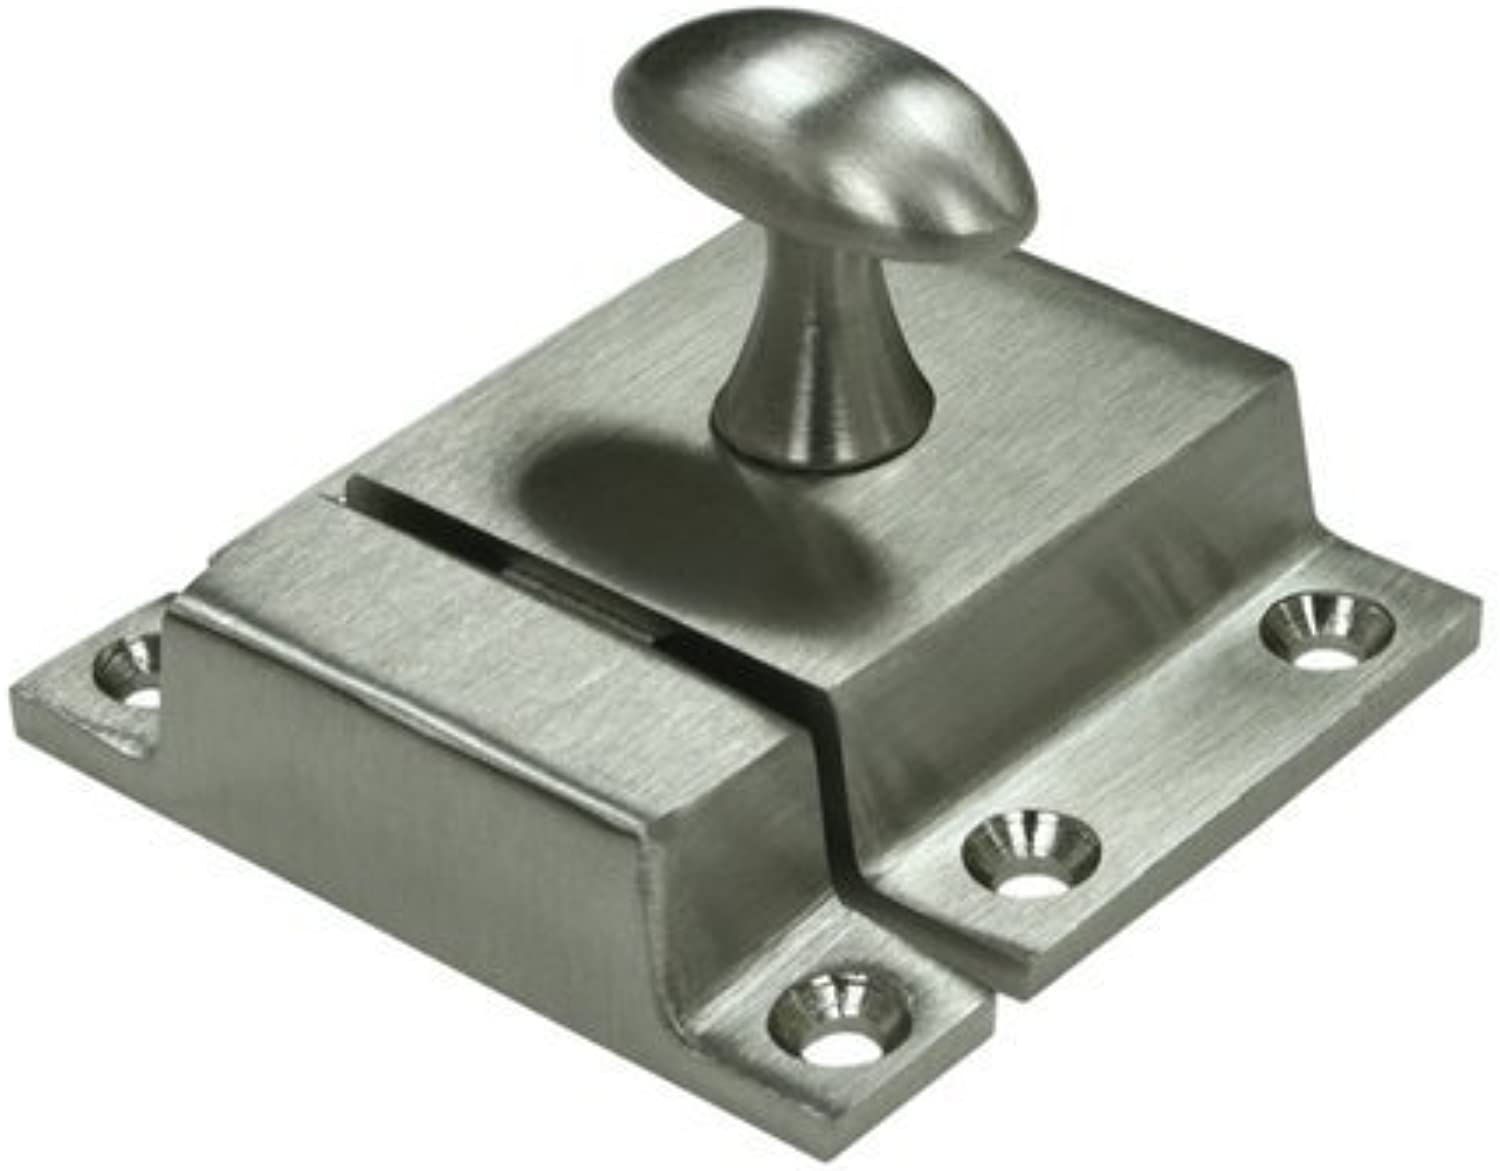 Deltana CL1580U15 1.6-Inch x 2.3-Inch Cabinet Lock by Deltana